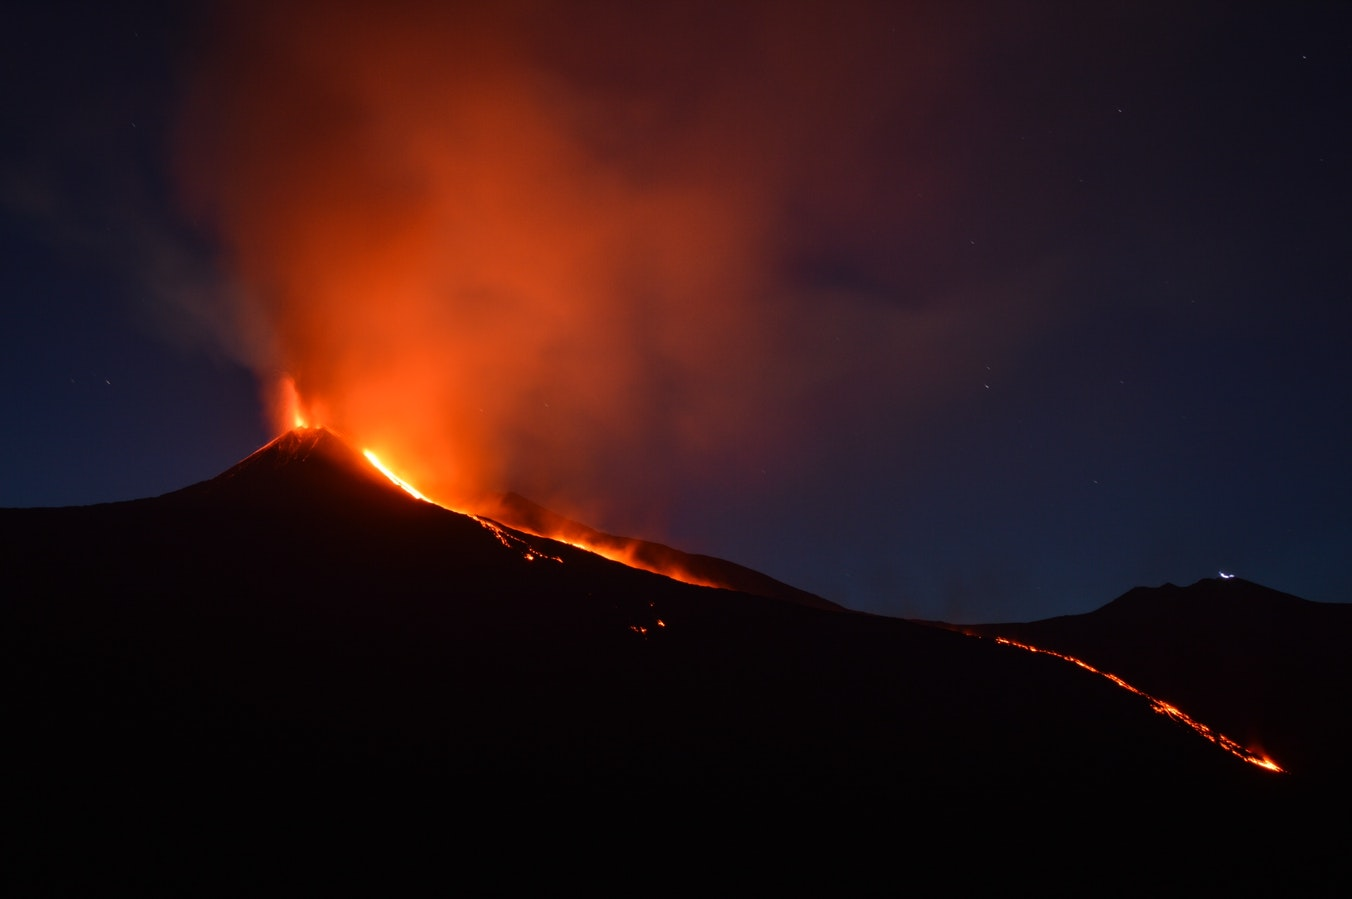 photo de nuit de l'Etna en éruption